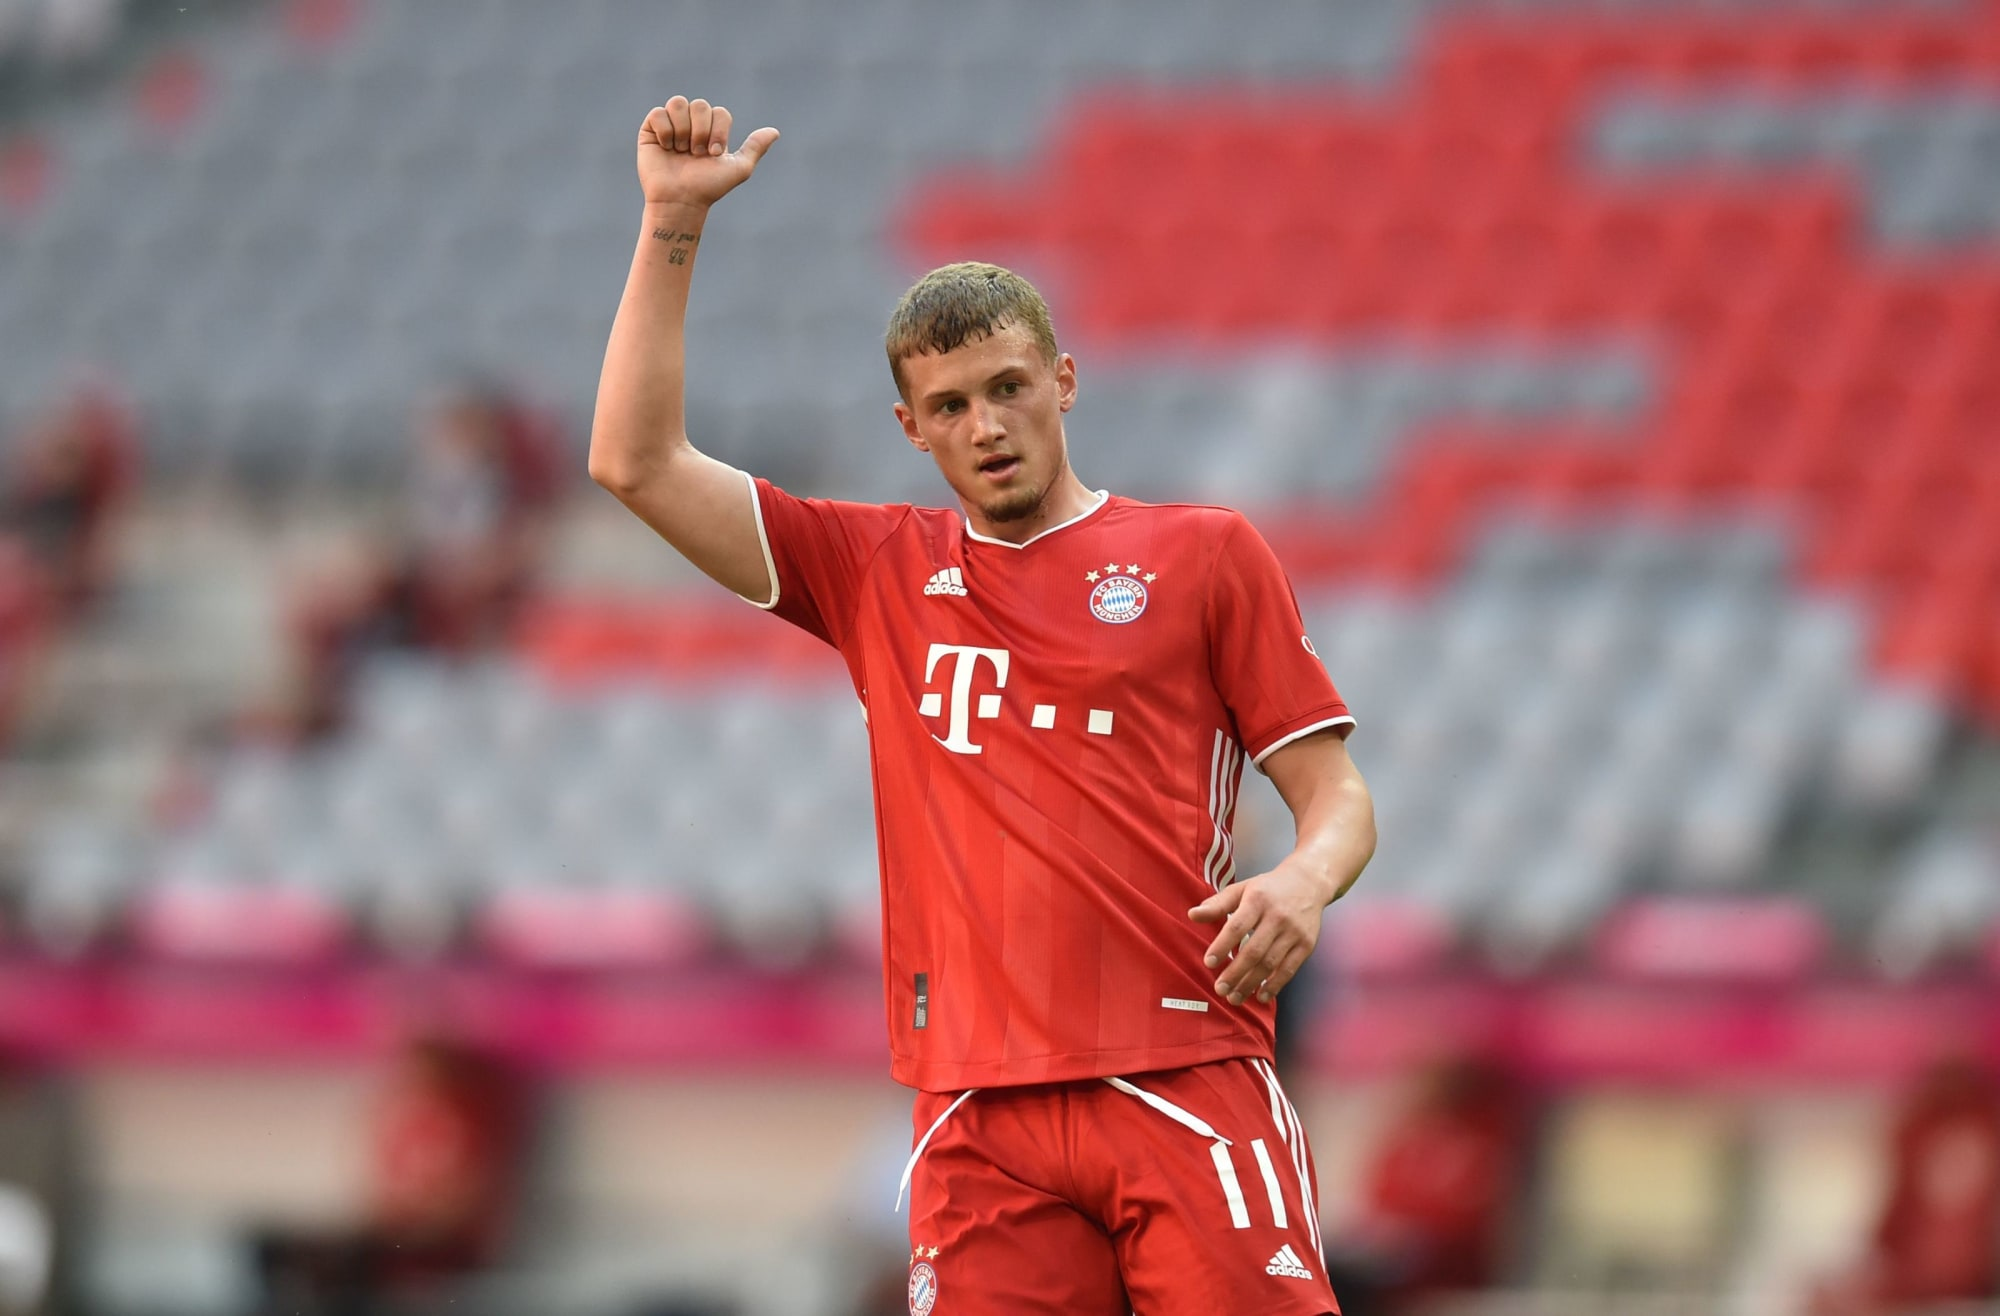 Mickael Cuisance could return to Bayern Munich in summer